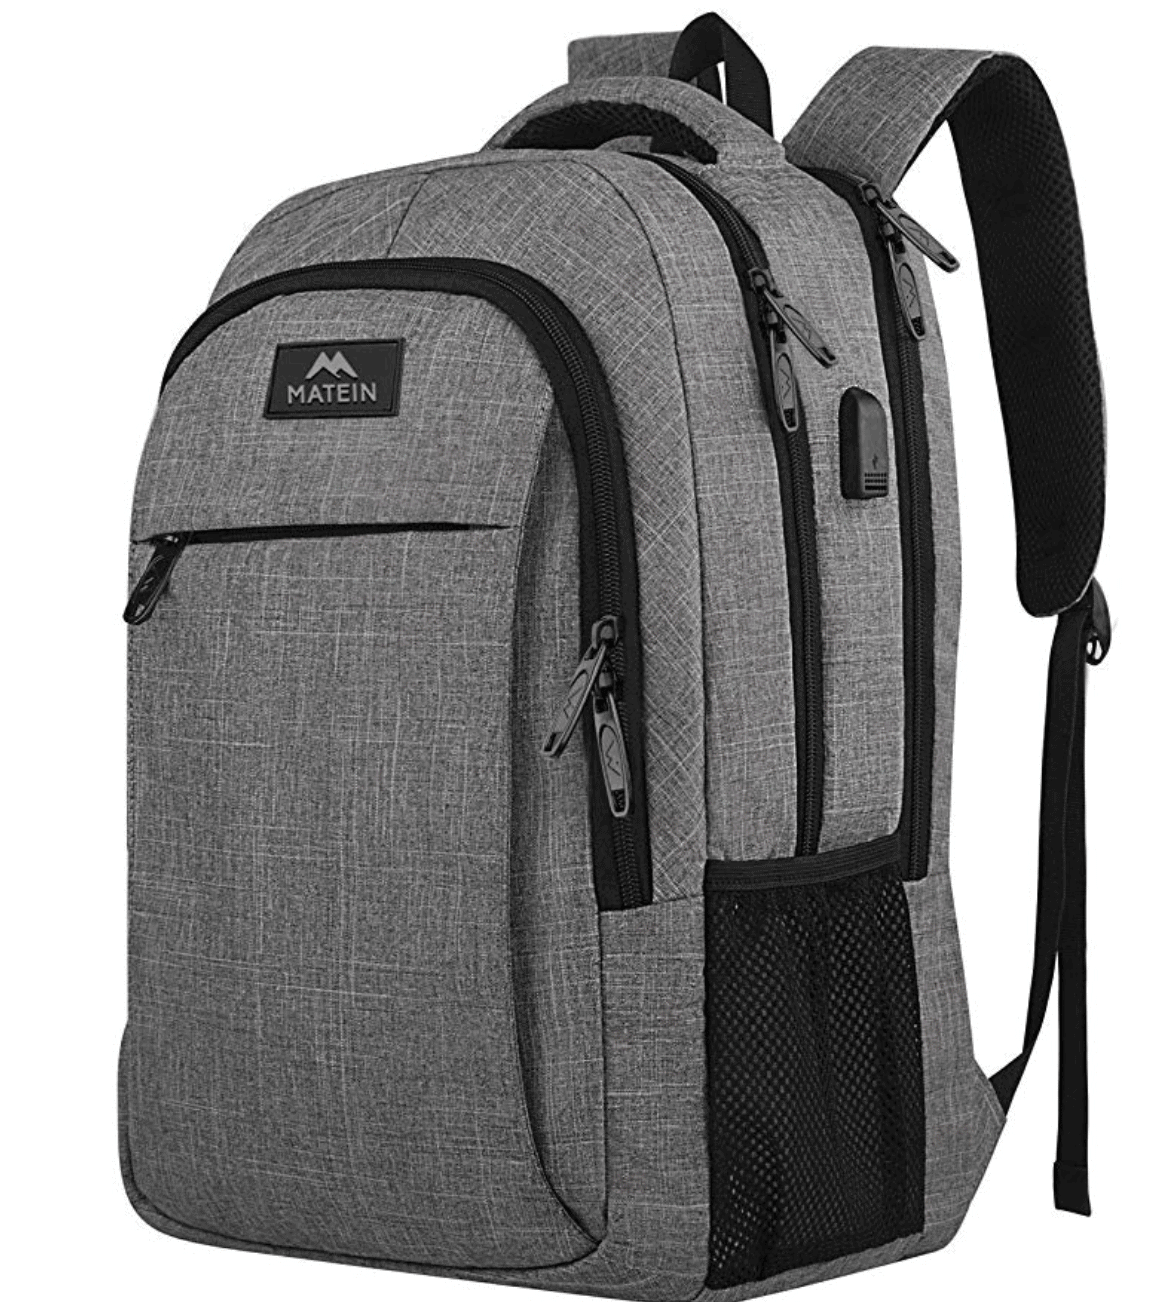 Anti-theft laptop backpack for men and women unisex - Best useful travel gift idea under $50